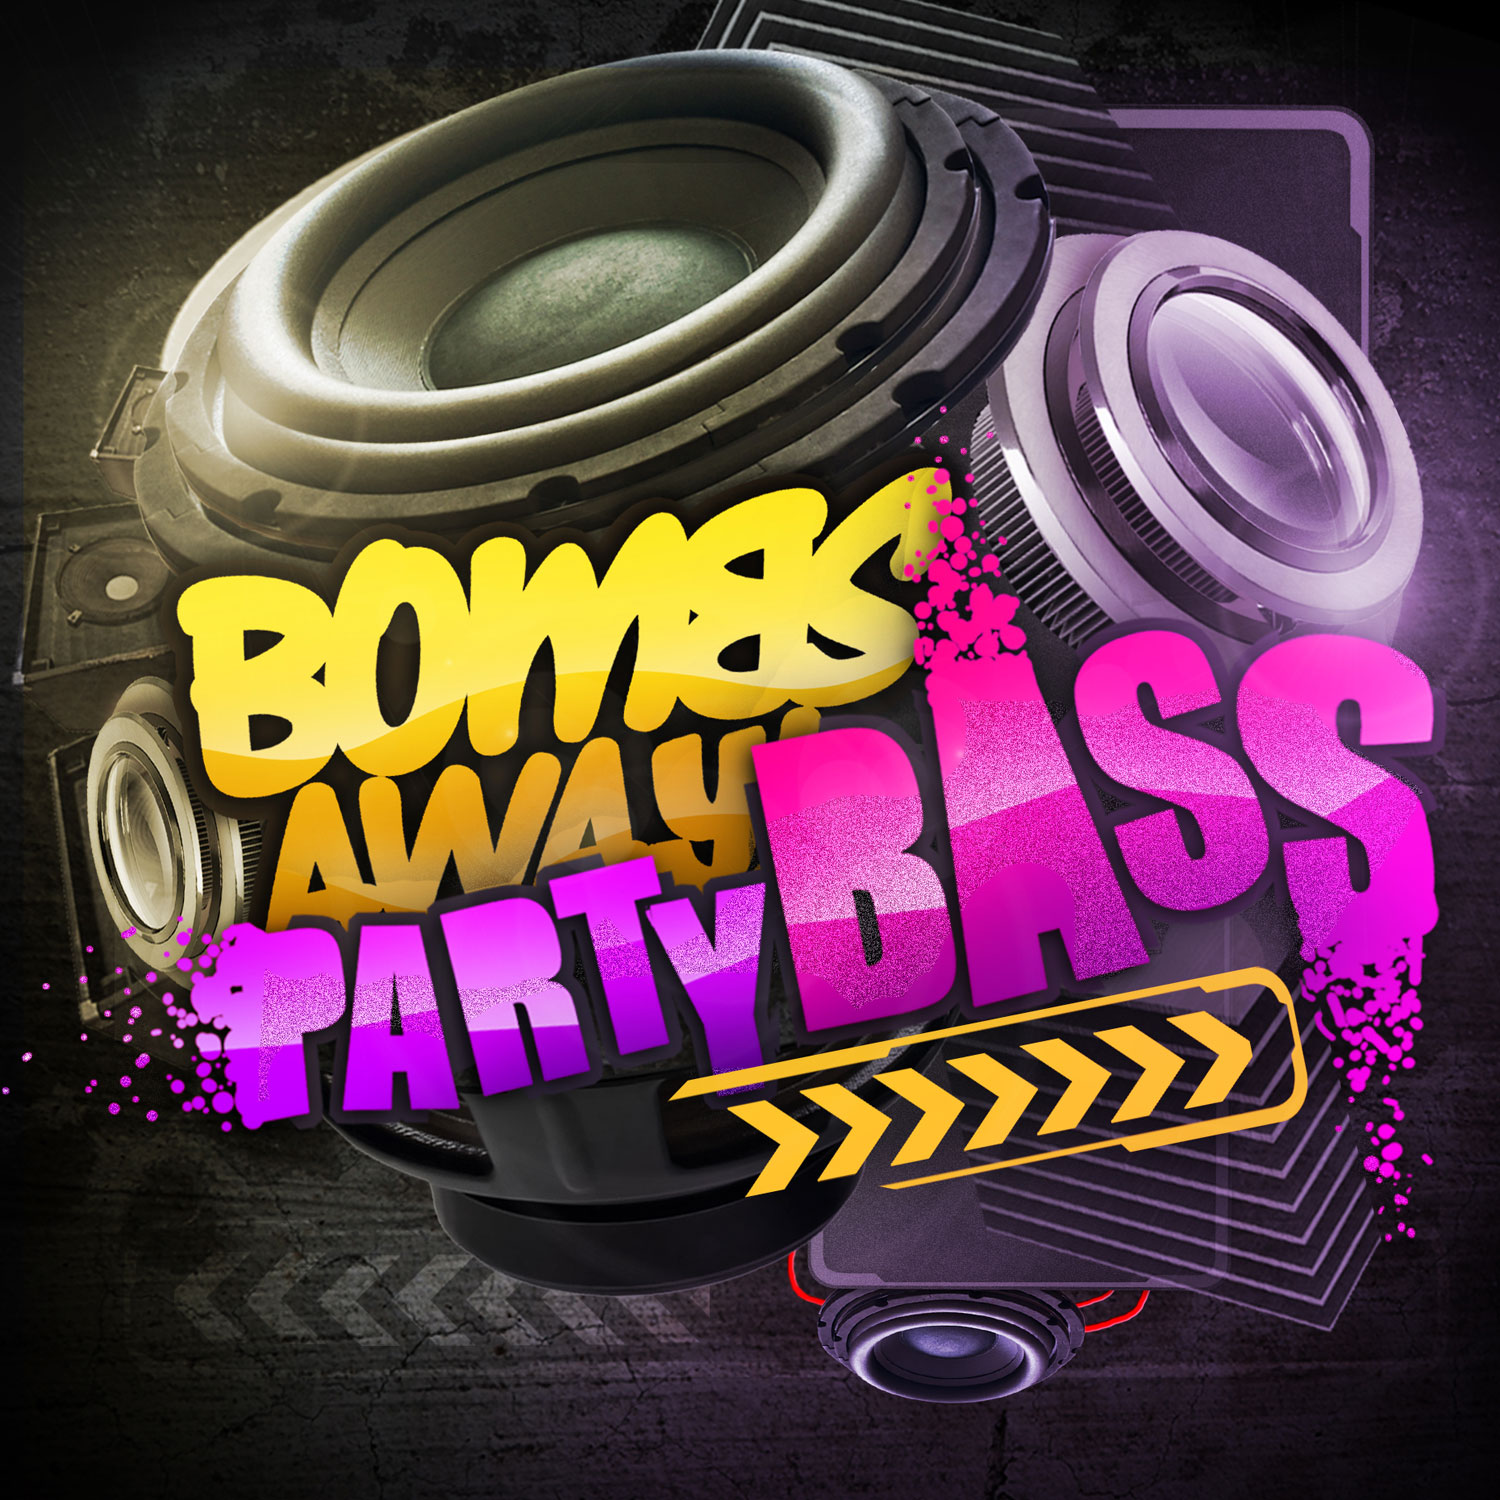 Bombs Away feat. The Twins - Party Bass (Video Edit)